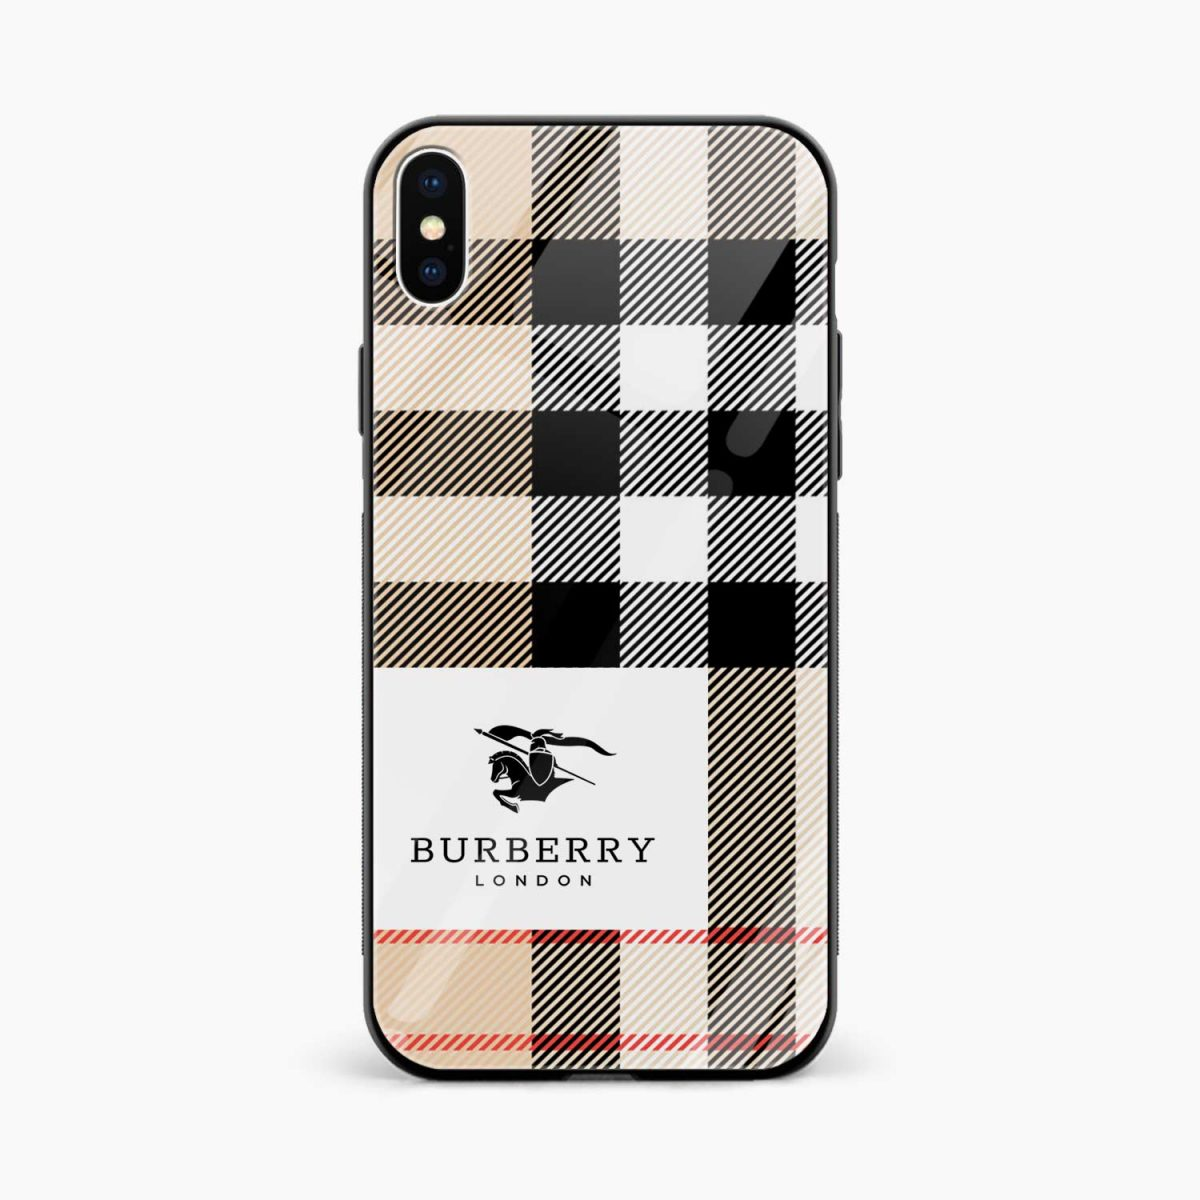 burberry cross lines pattern front view apple iphone x xs max back cover